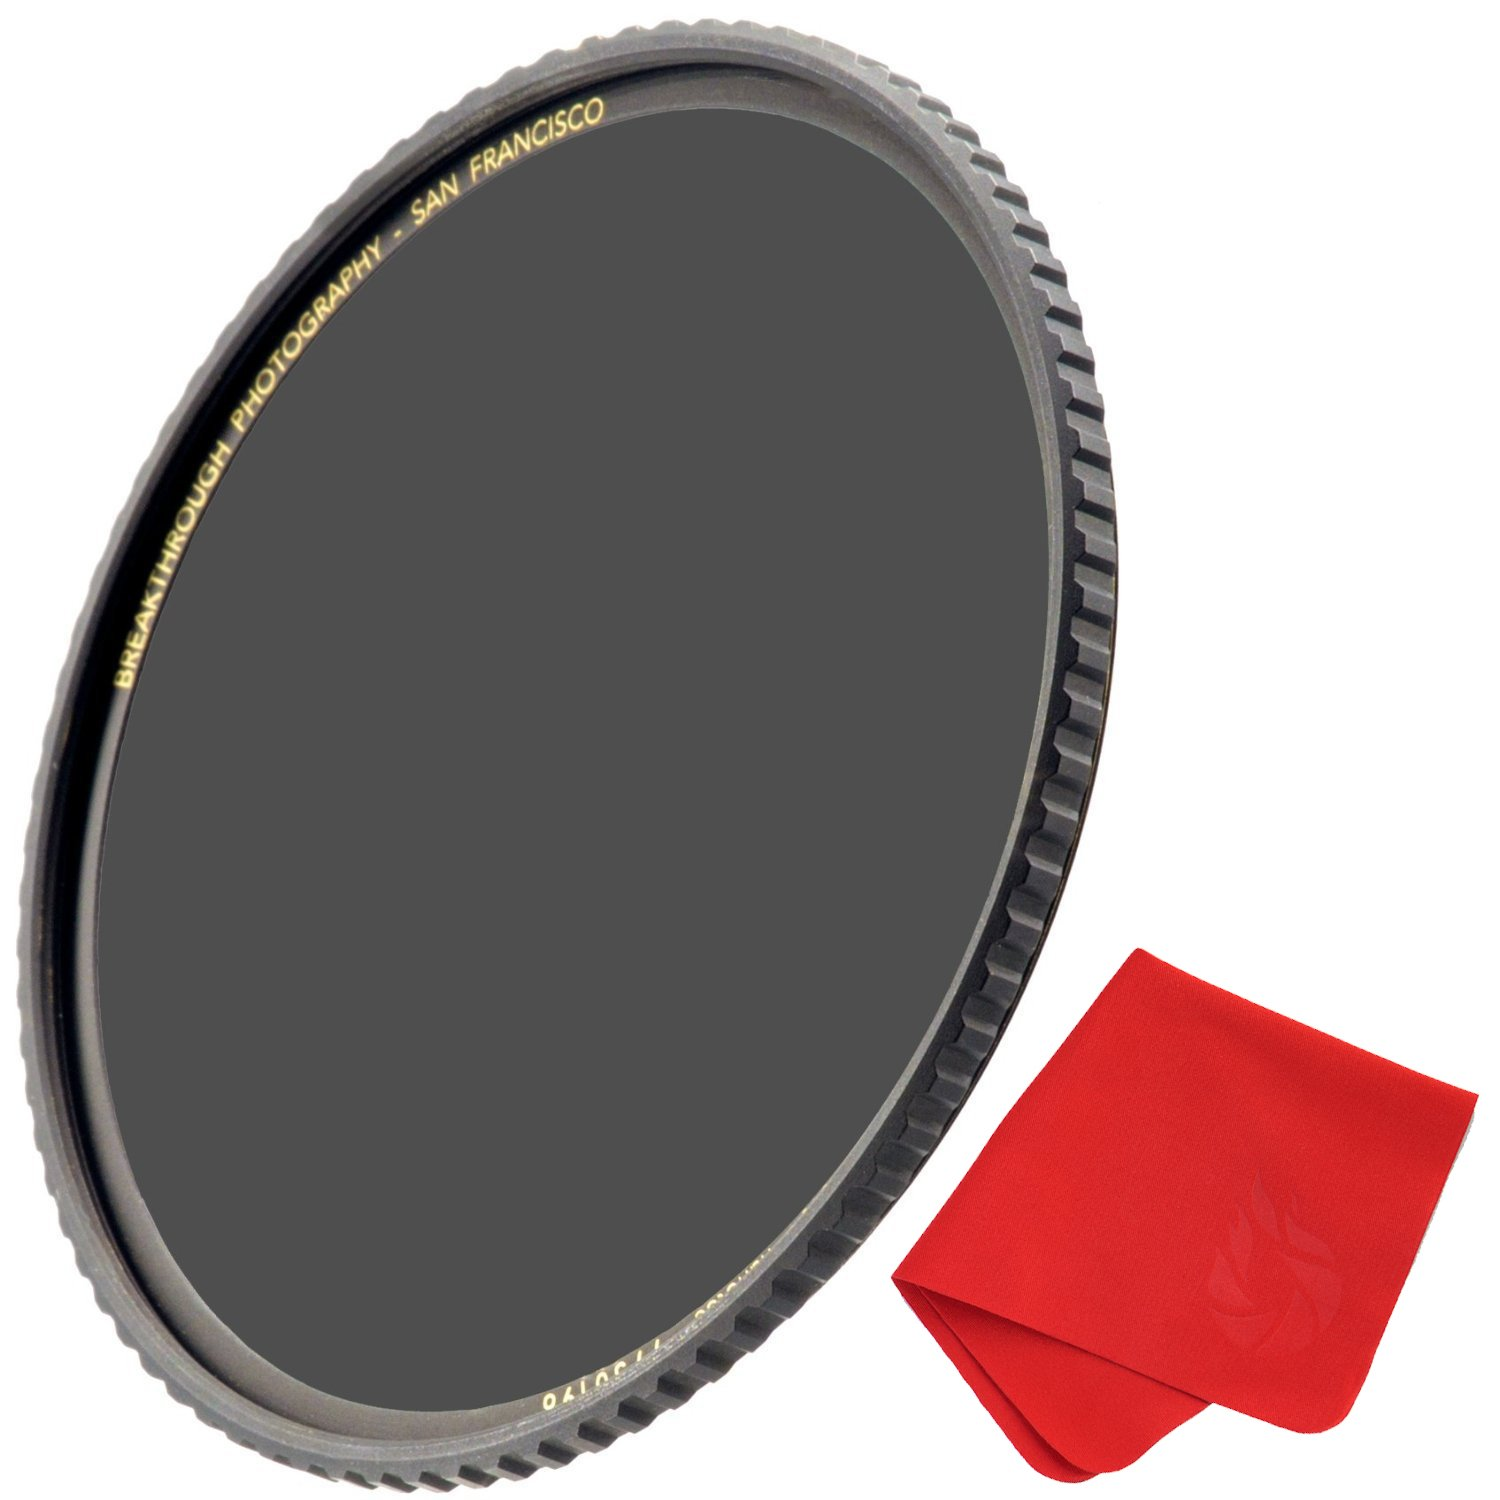 Breakthrough Photography 82mm X4 10-Stop ND Filter Camera Lenses, Neutral Density Professional Photography Filter Lens Cloth, MRC16, Schott B270 Glass, Nanotec, Ultra-Slim, Weather-Sealed